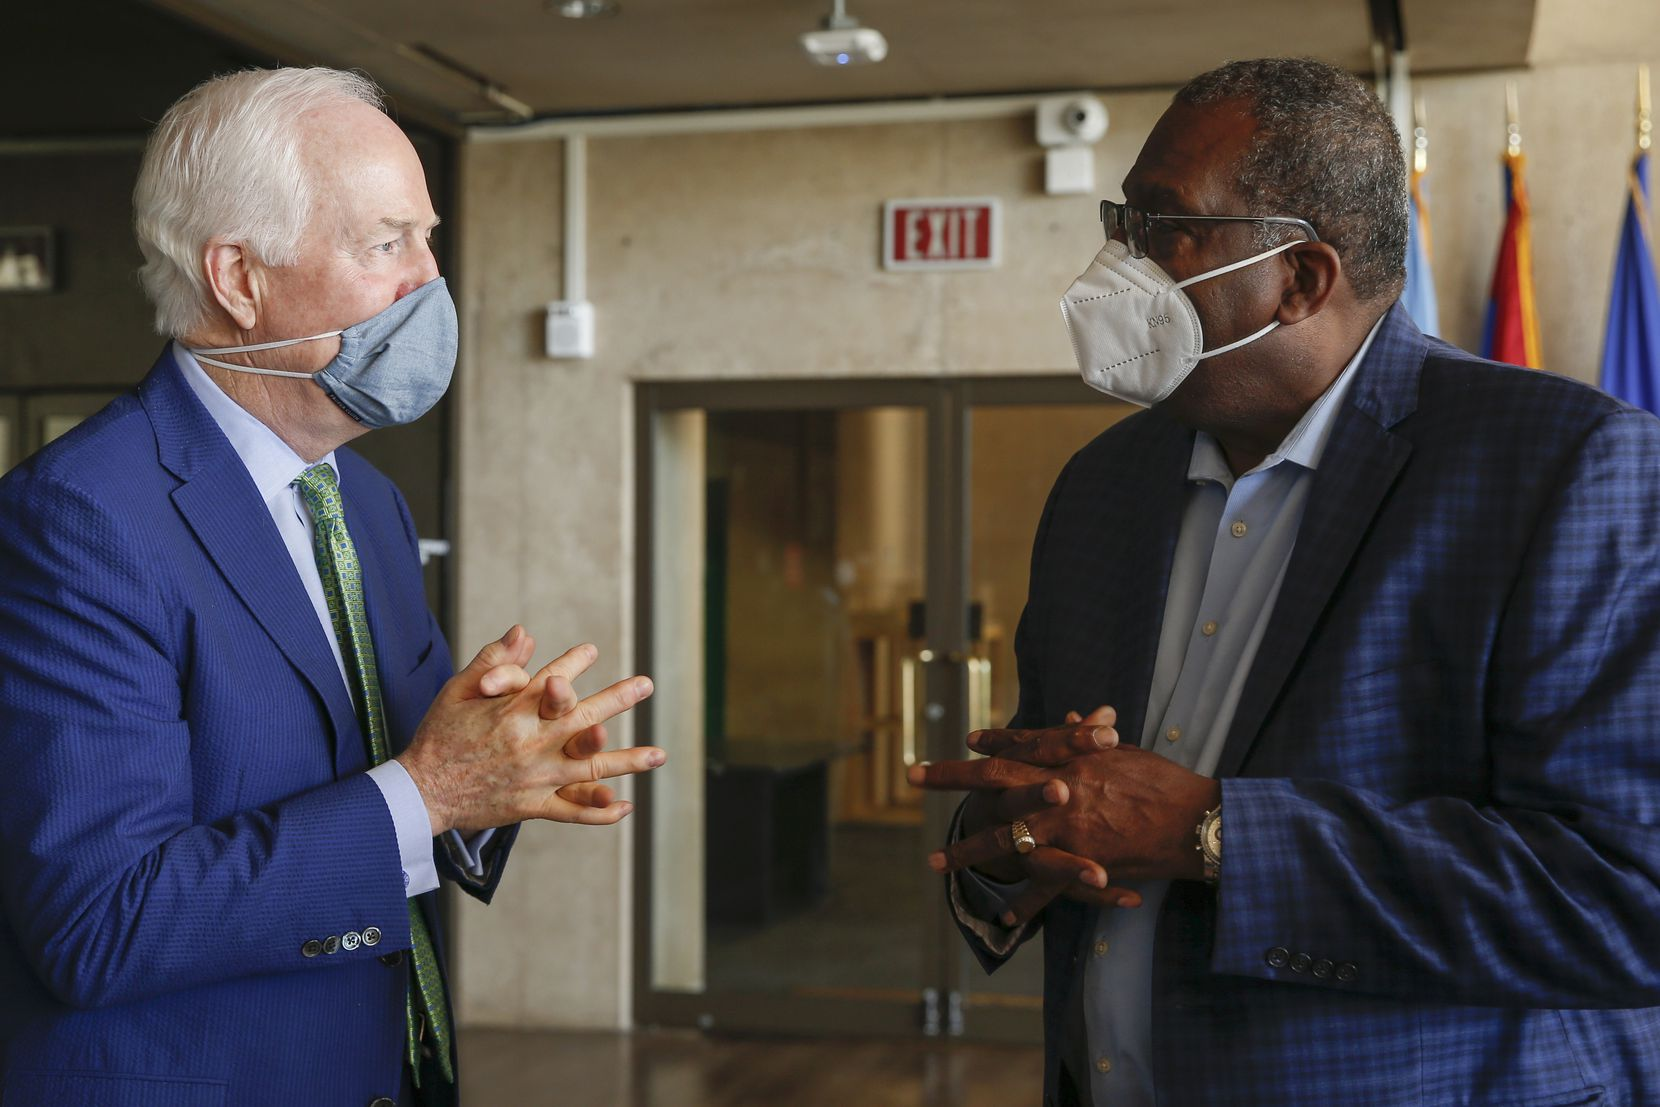 U.S. Sen. John Cornyn, R-Texas (left) and Texas state Sen. Royce West, D-Dallas, conversed following a law enforcement roundtable on Friday, June 12, 2020 at City Hall in Dallas.(Ryan Michalesko/The Dallas Morning News)